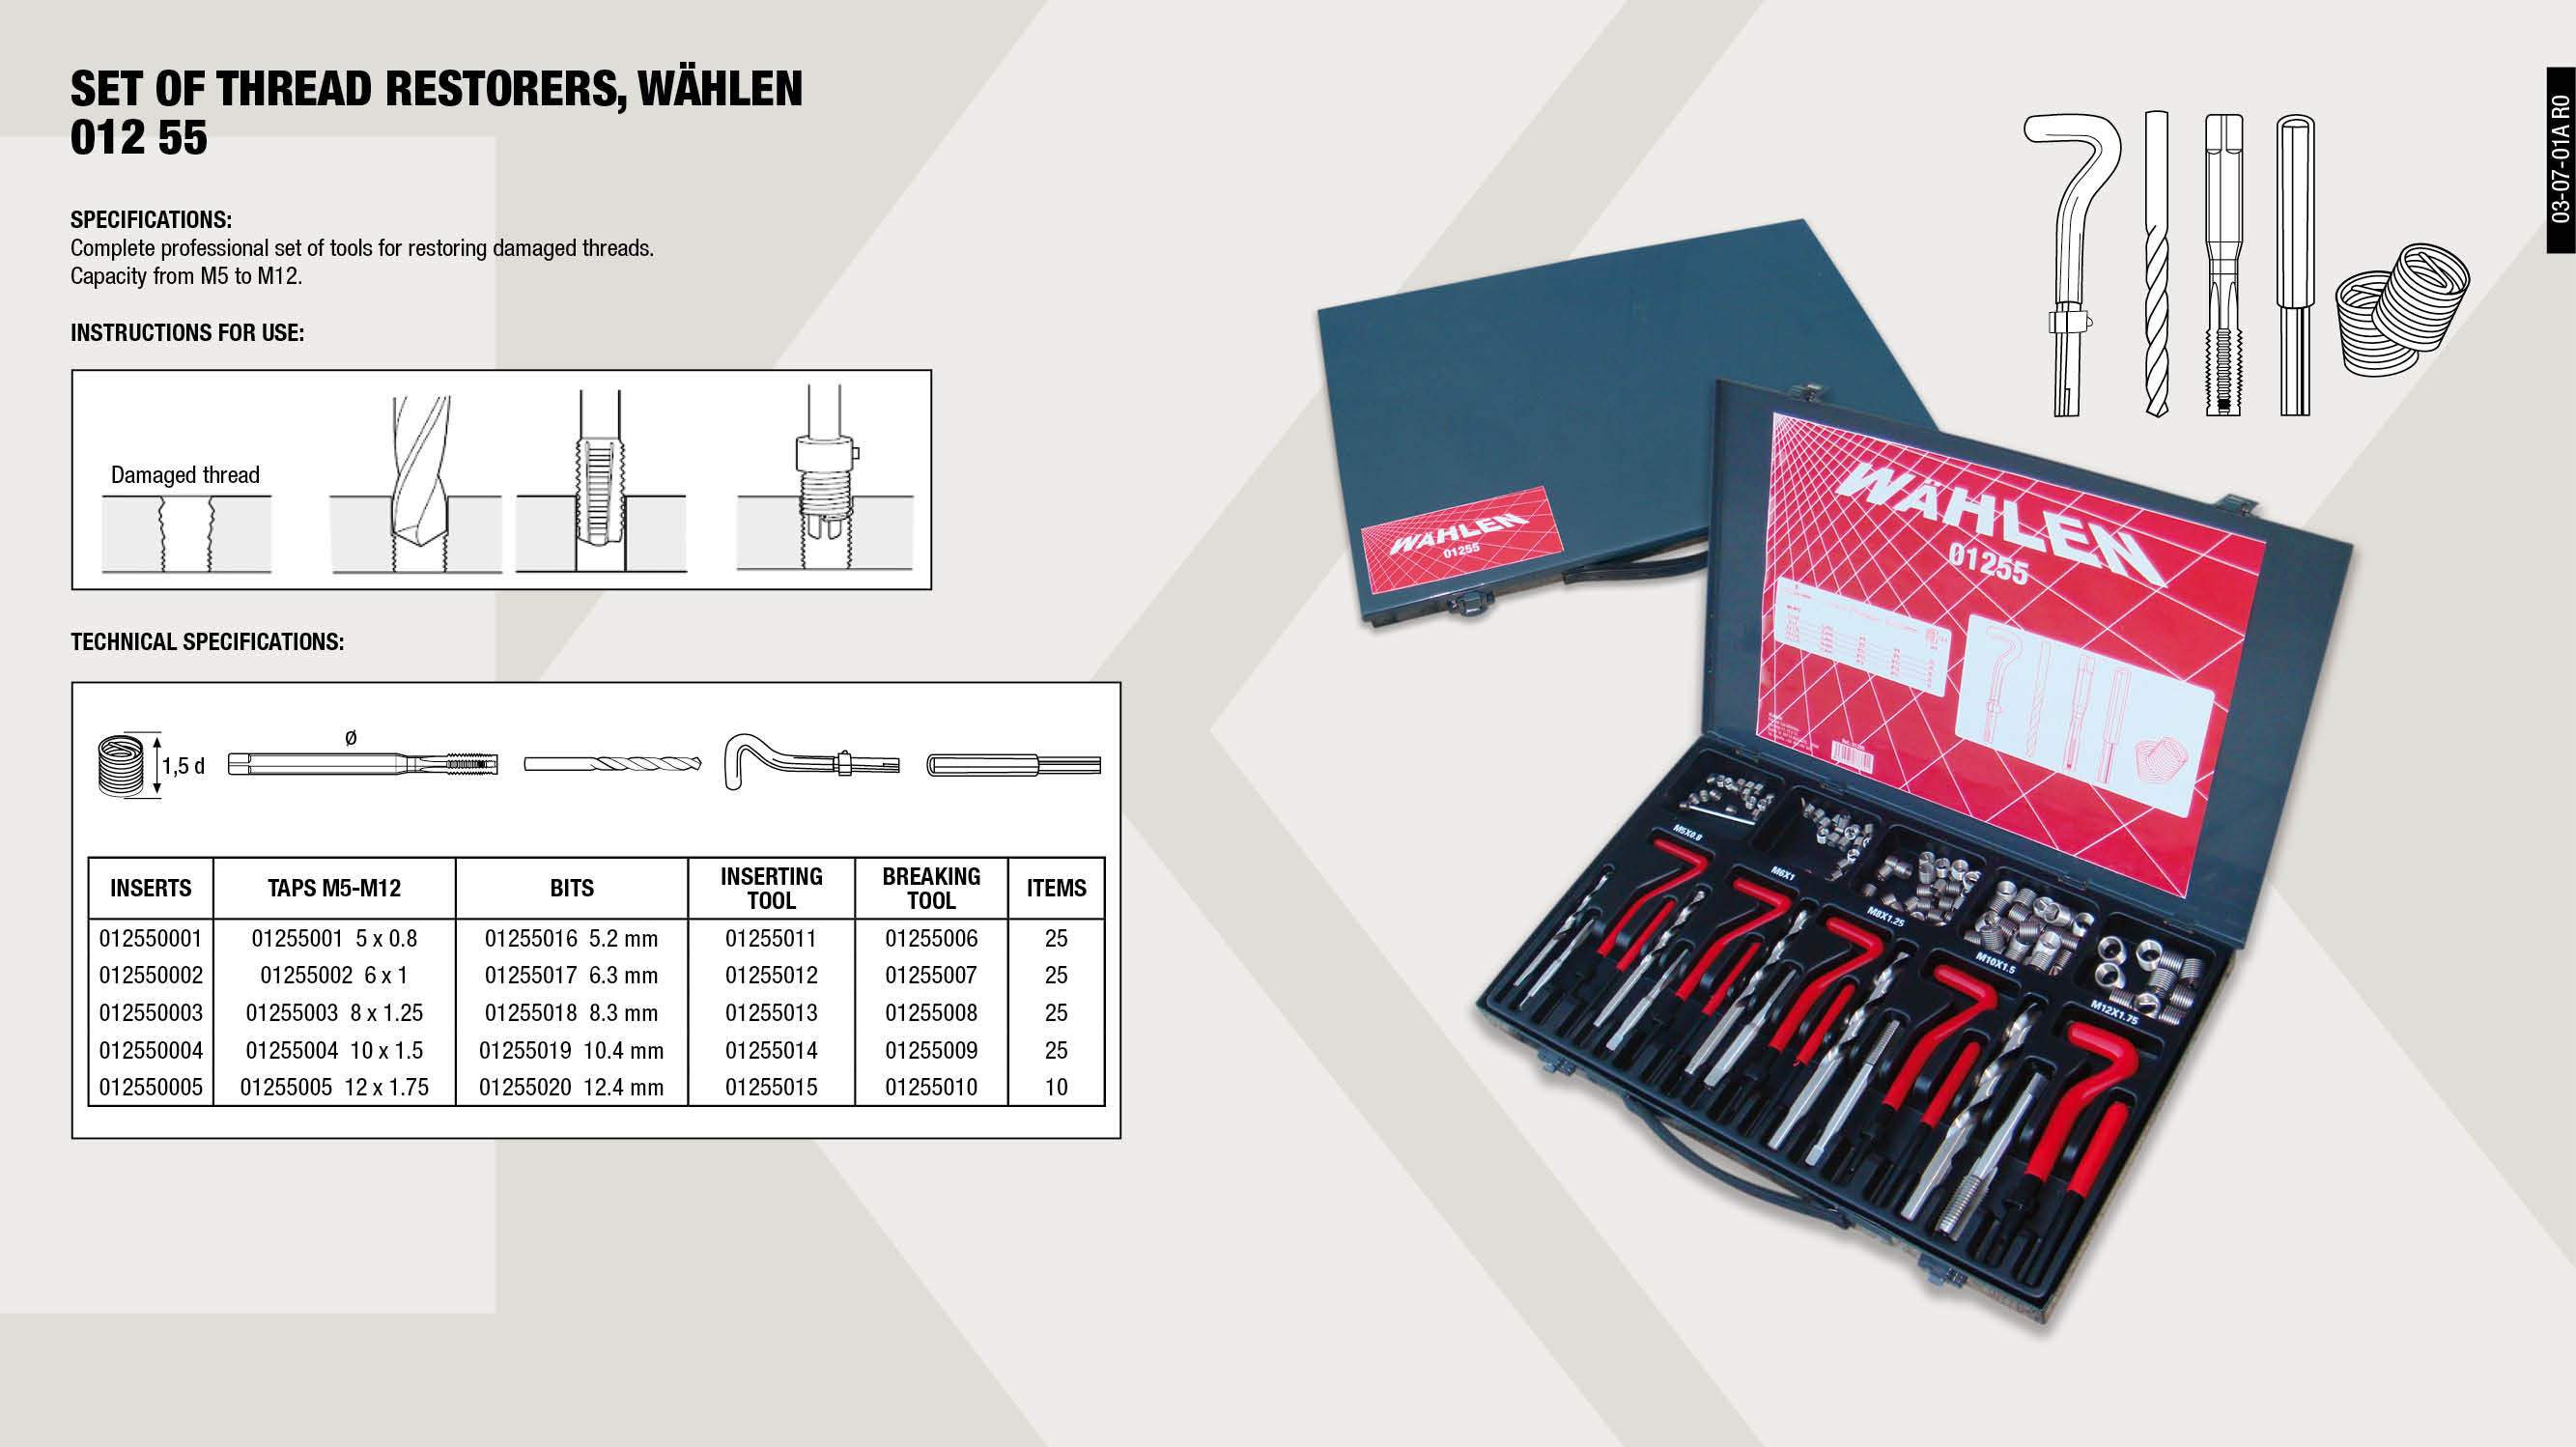 TANG GR.11 SET 01255                                        ,  									TAP M6X1 SET 01255                                          ,  									INSERTING TOOL GR.8 SET 01255                               ,  									WIRE-THREAD INSERT WÄHLEN 10X1.5                            ,  									INSERTING TOOL GR.9 SET 01255                               ,  									WIRE-THREAD INSERT WÄHLEN 12X1.75                           ,  									TANG GR.9 SET 01255                                         ,  									DRILL 8.30MM SET 01255                                      ,  									WIRE-THREAD INSERT WÄHLEN 5X0.8                             ,  									WIRE-THREAD INSERT WÄHLEN 6X1                               ,  									DRILL 10.40MM SET 01255                                     ,  									DRILL 12.40MM SET 01255                                     ,  									DRILL 5.20MM SET 01255                                      ,  									WIRE-THREAD INSERT WÄHLEN 8X1.25                            ,  									DRILL 6.30MM SET 01255                                      ,  									TANG GR.8 SET 01255                                         ,  									INSERTING TOOL GR.15 SET 01255                              ,  									TAP M10X1.5 SET 01255                                       ,  									INSERTING TOOL GR.11 SET 01255                              ,  									TANG GR.13 SET 01255                                        ,  									TANG GR.15 SET 01255                                        ,  									TAP M12X1.75 SET 01255                                      ,  									THREAD REPAIR WORKSHOP KIT                                  ,  									INSERTING TOOL GR.13 SET 01255                              ,  									TAP M5X0.8 SET 01255                                        ,  									TAP M8X1.25 SET 01255                                       ,